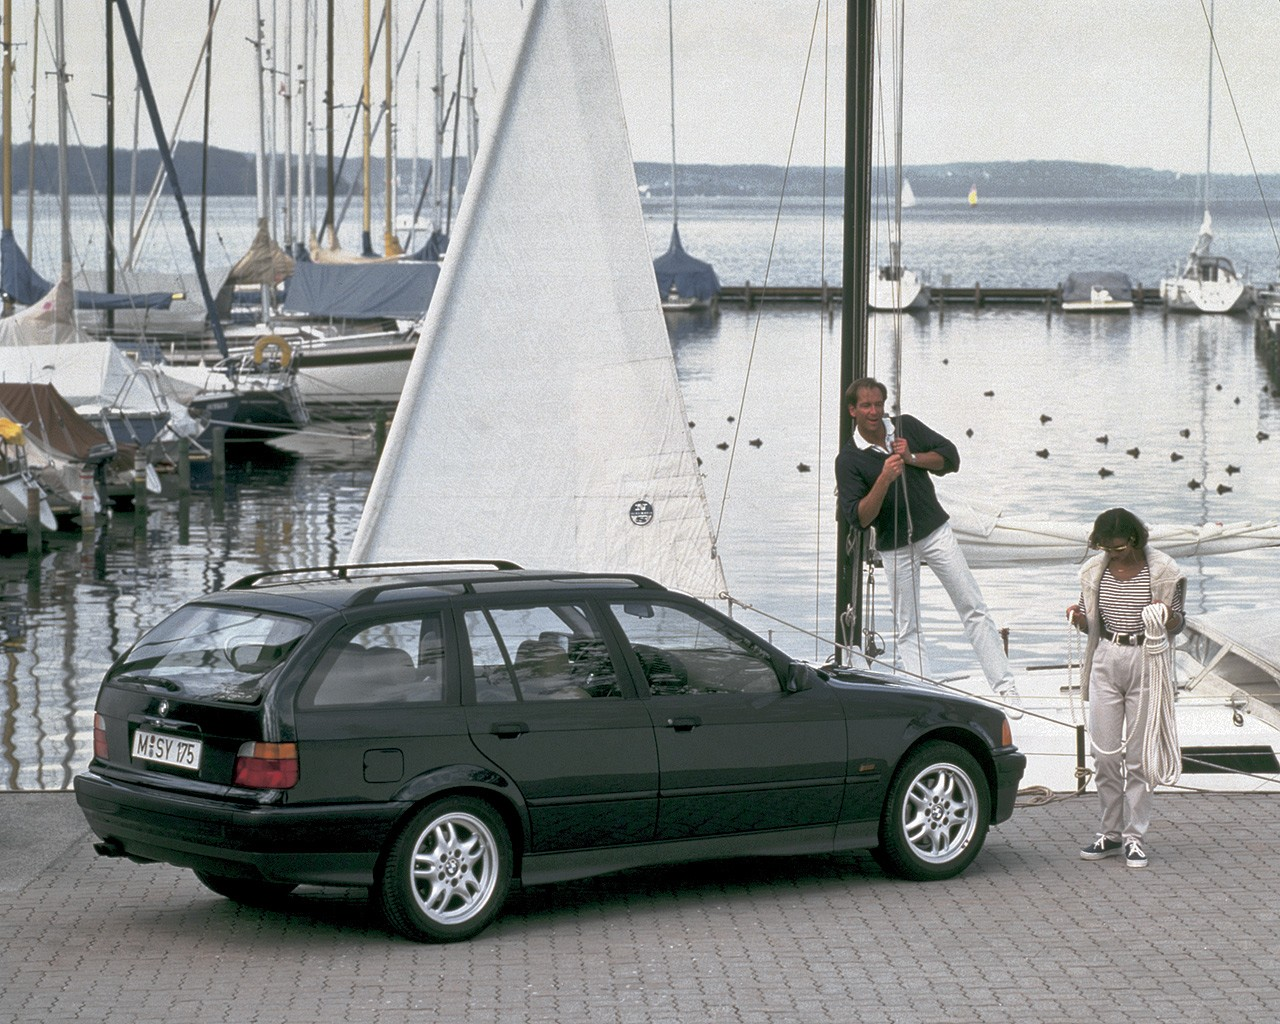 1995 Bmw 3 series touring (e36) - pictures, information ...